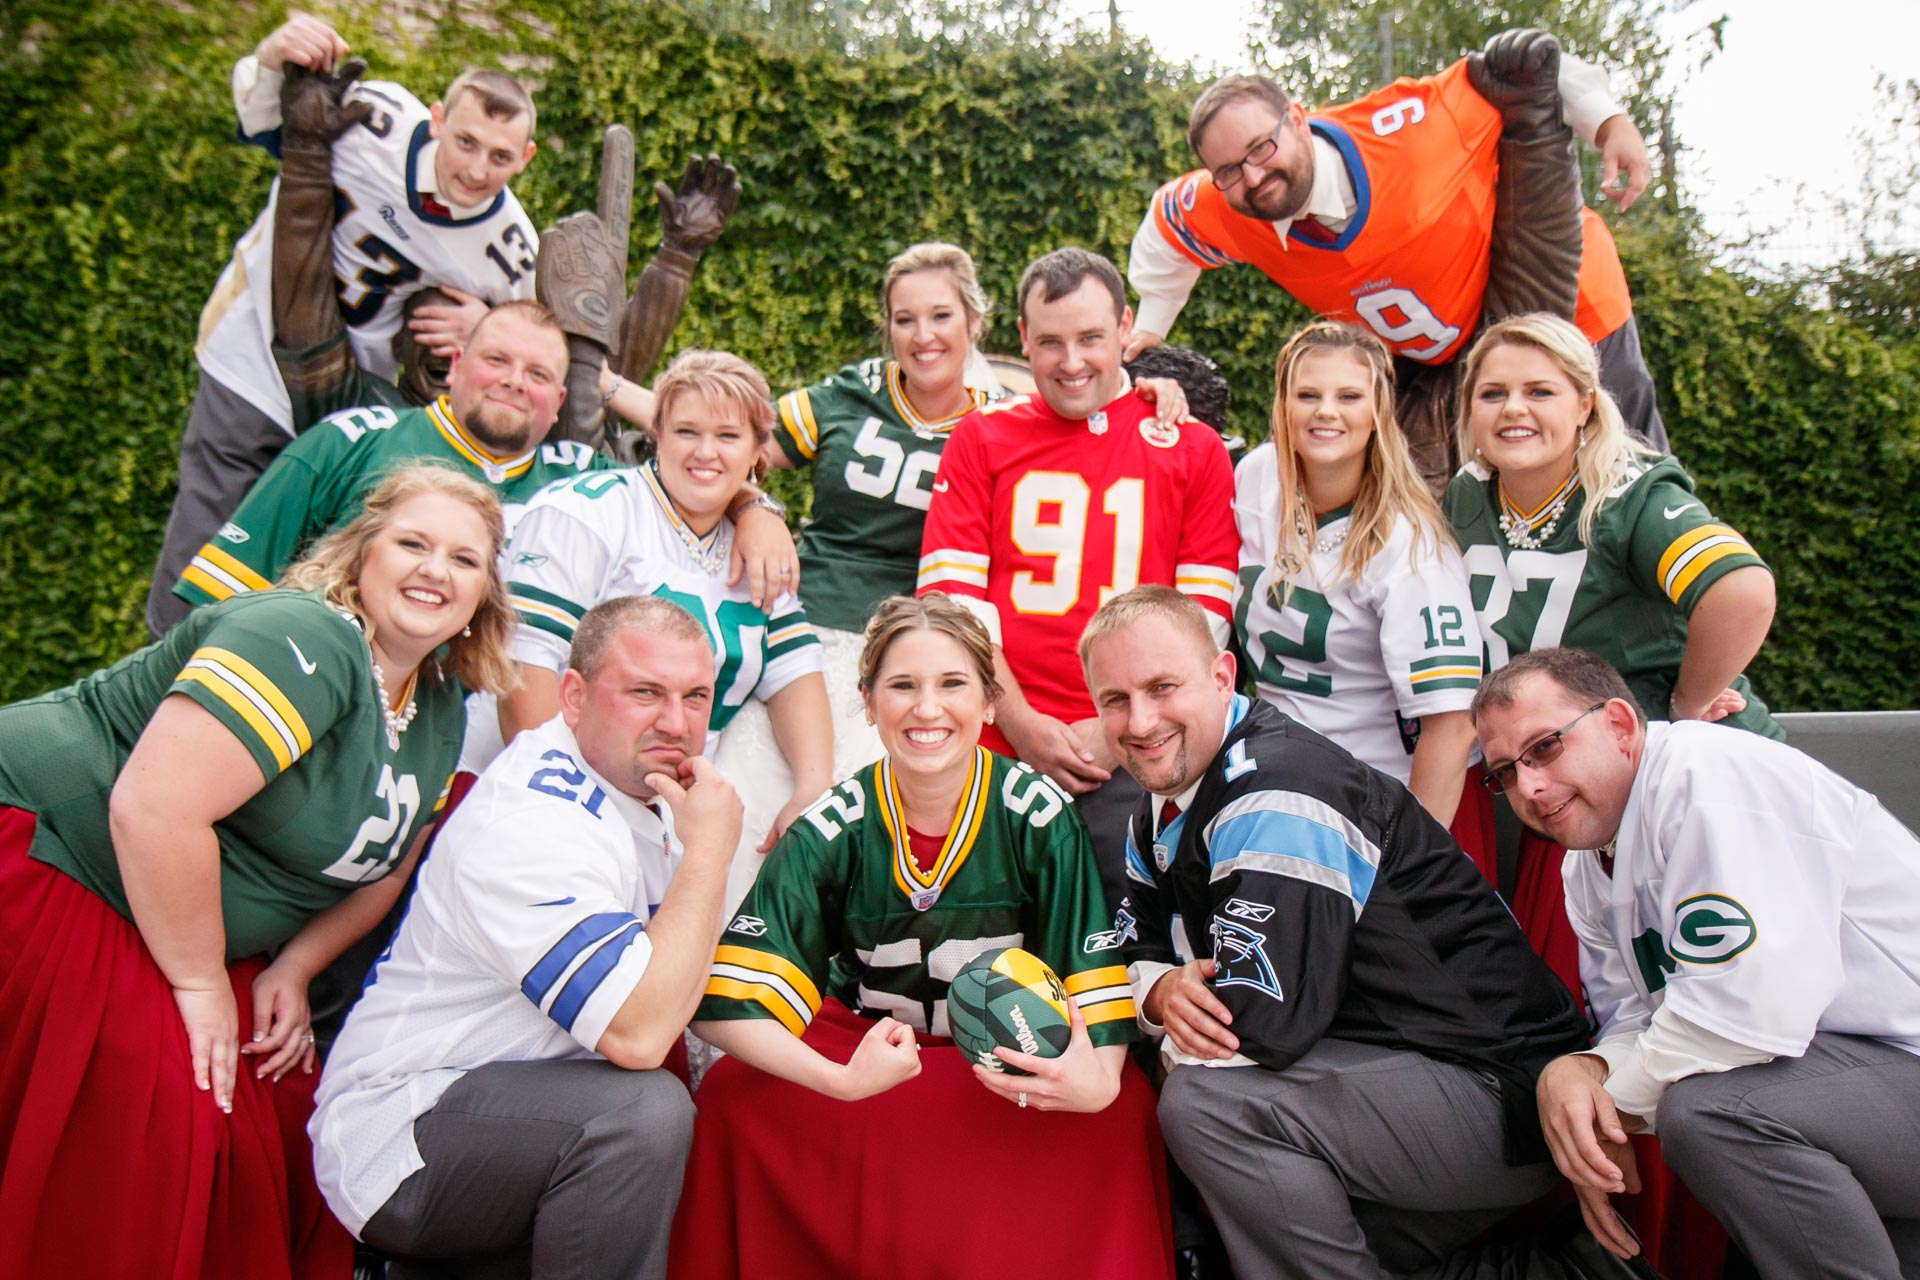 lambeau-field-wedding-bride-groom-adam-shea-photography-green-bay-appleton-neenah-photographer-6.jpg